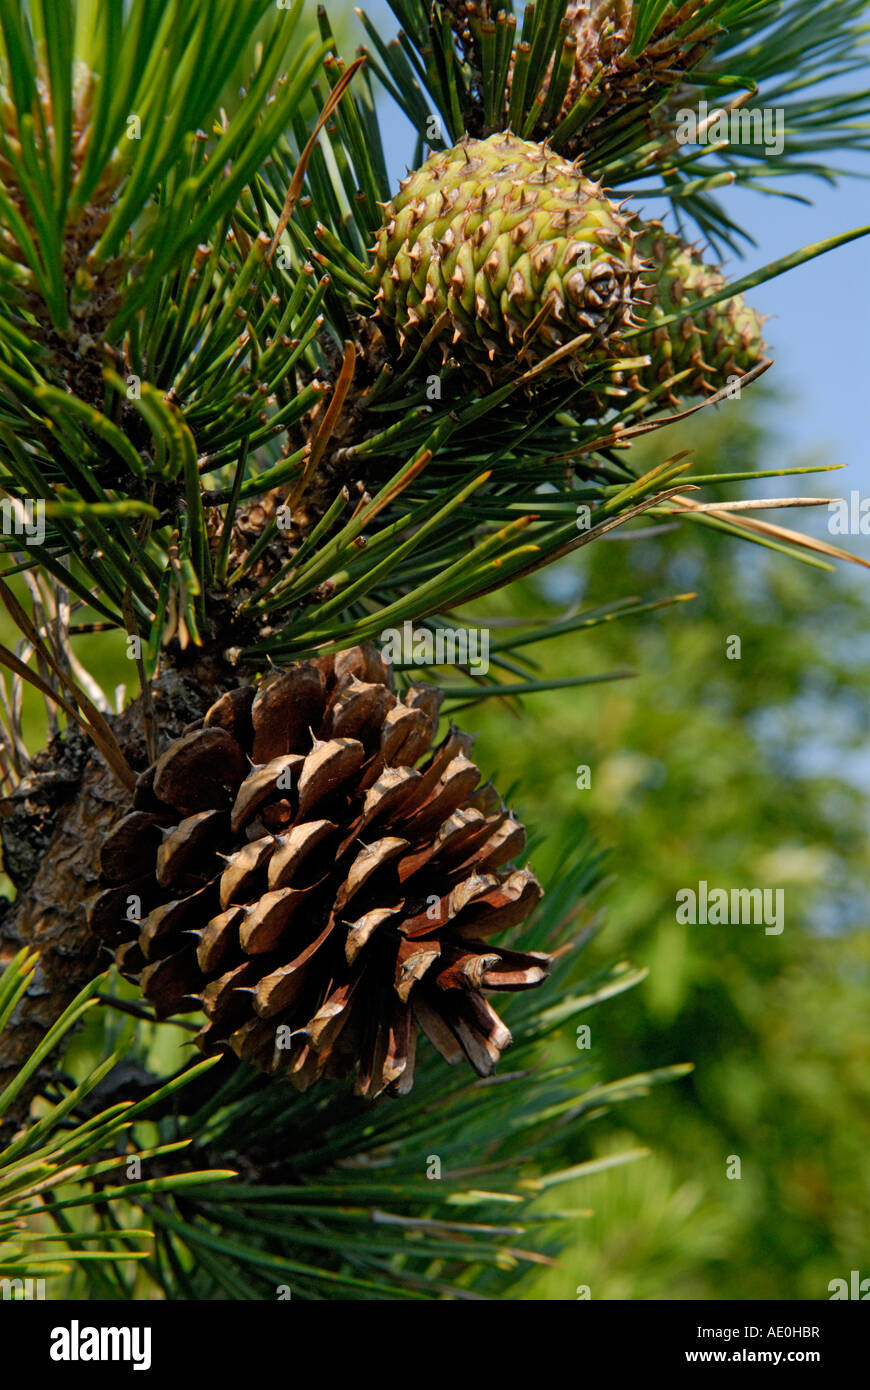 Pine cones, female, pitch pine tree, Pinus rigida - Stock Image